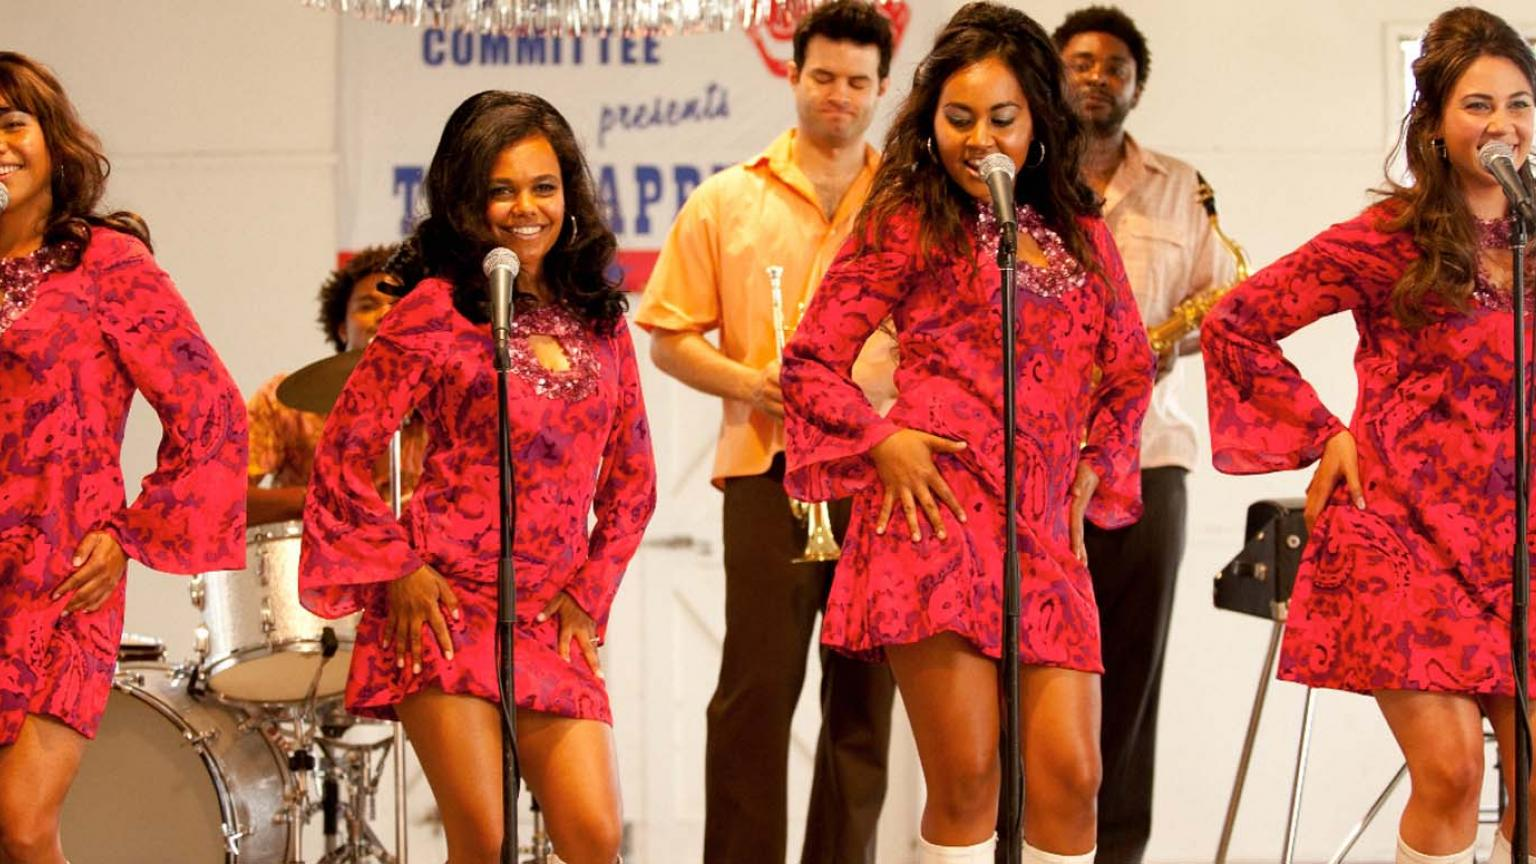 The four members of the Indigenous singing group The Sapphires perform on stage in colourful red dresses in a re-creation of a 1960s concert in the film The Sapphires